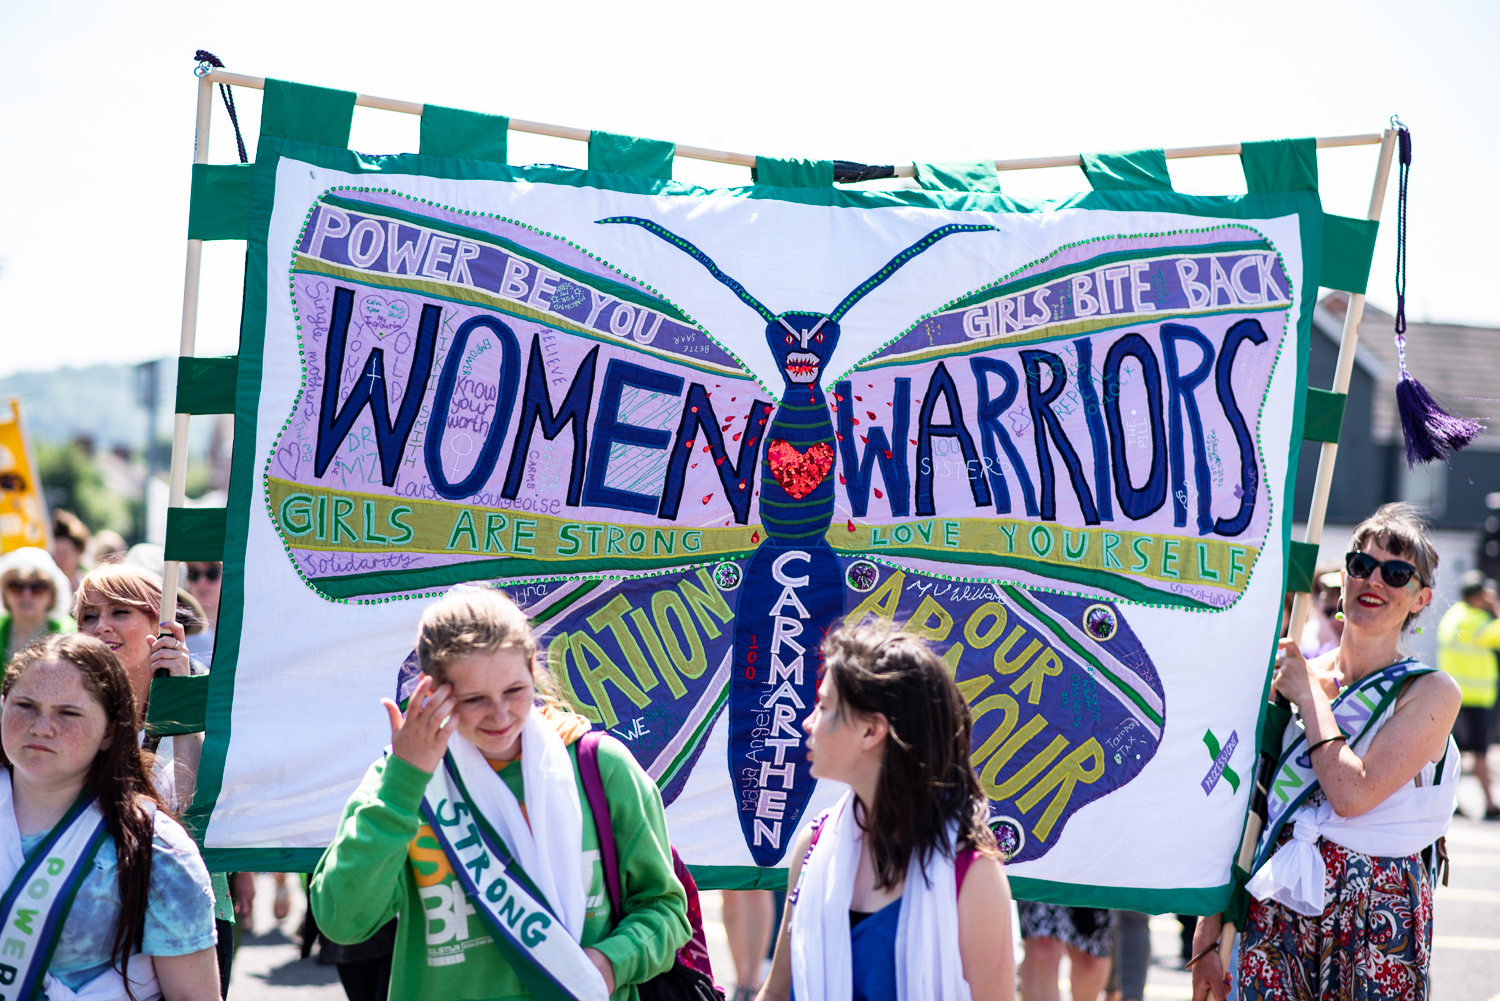 Women holding up Green and purple banner with a purple butterfly in the centre. On the banner is written WOMEN WARRIORS and other inspiration phrases